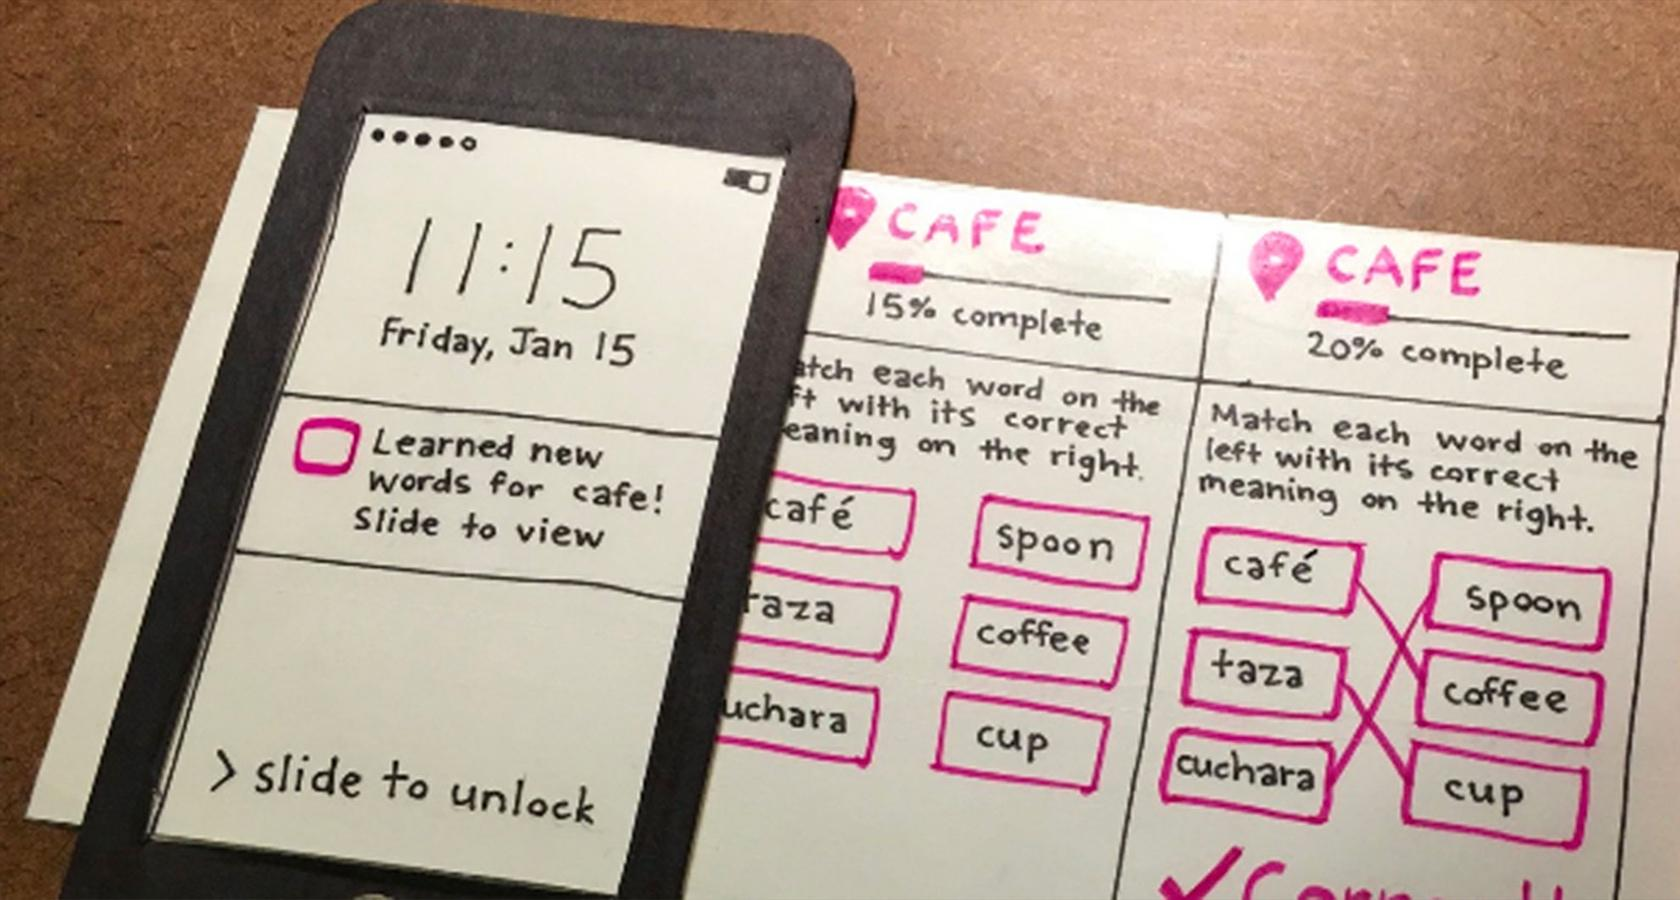 Many UX prototyping myths make it a hard sell to clients